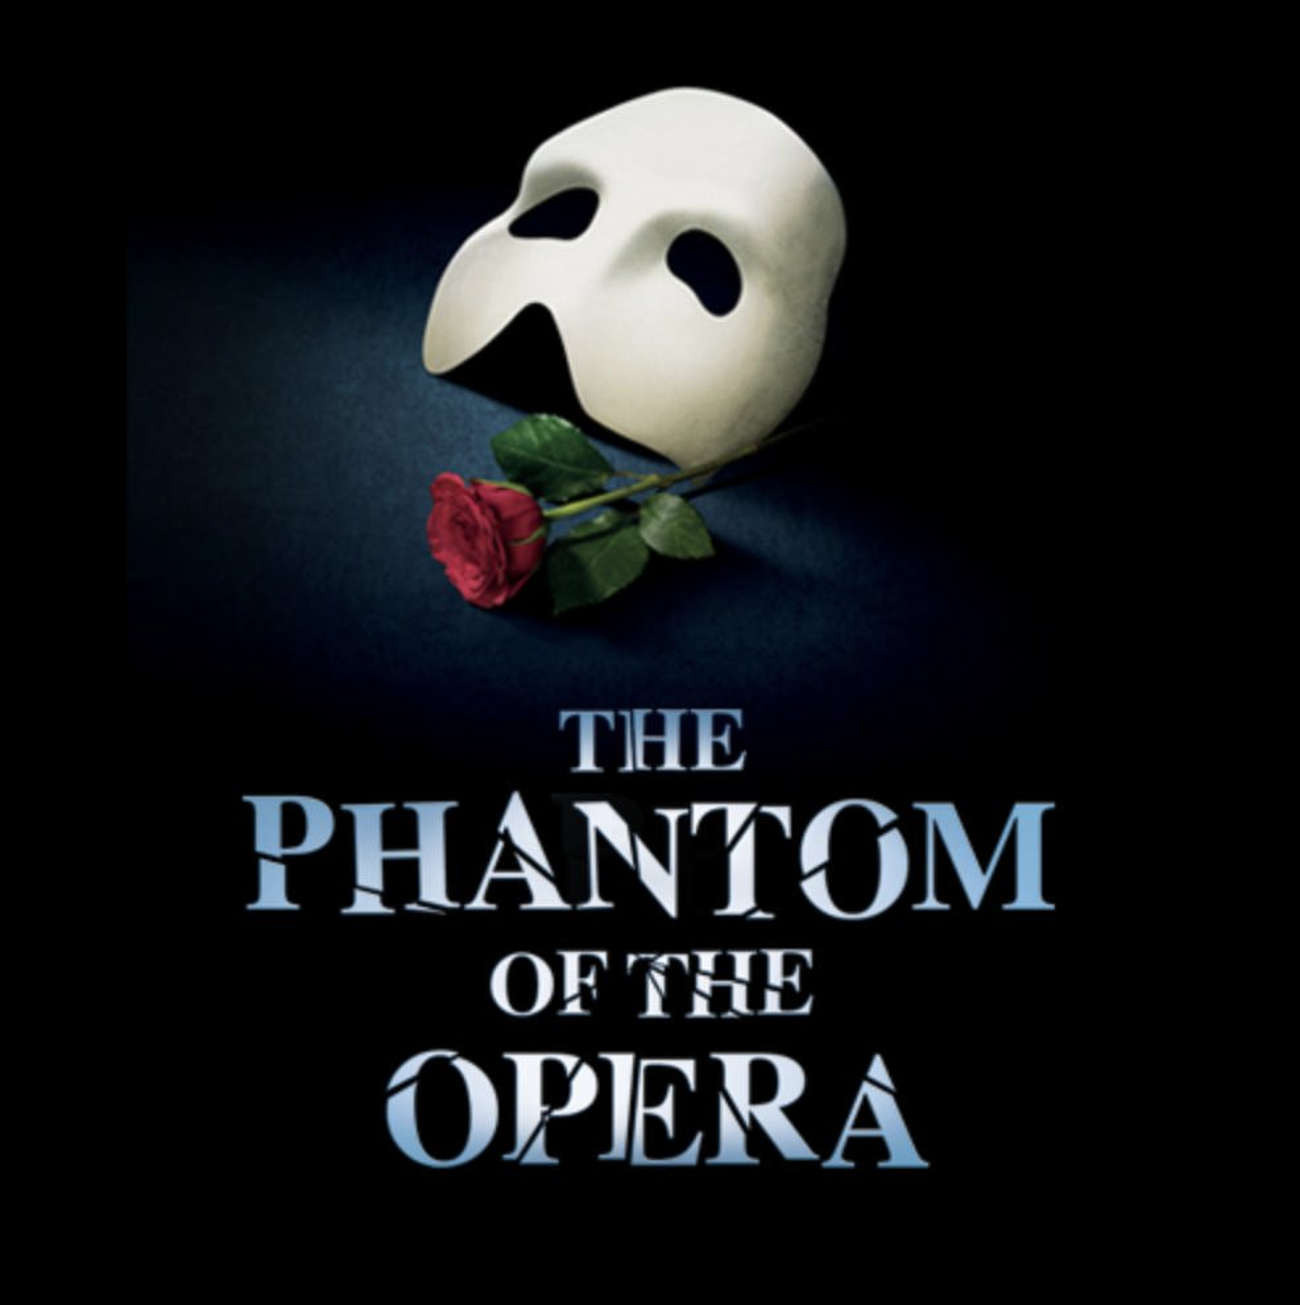 PHANTOM OF THE OPERA to Play at Blaisdell Concert Hall